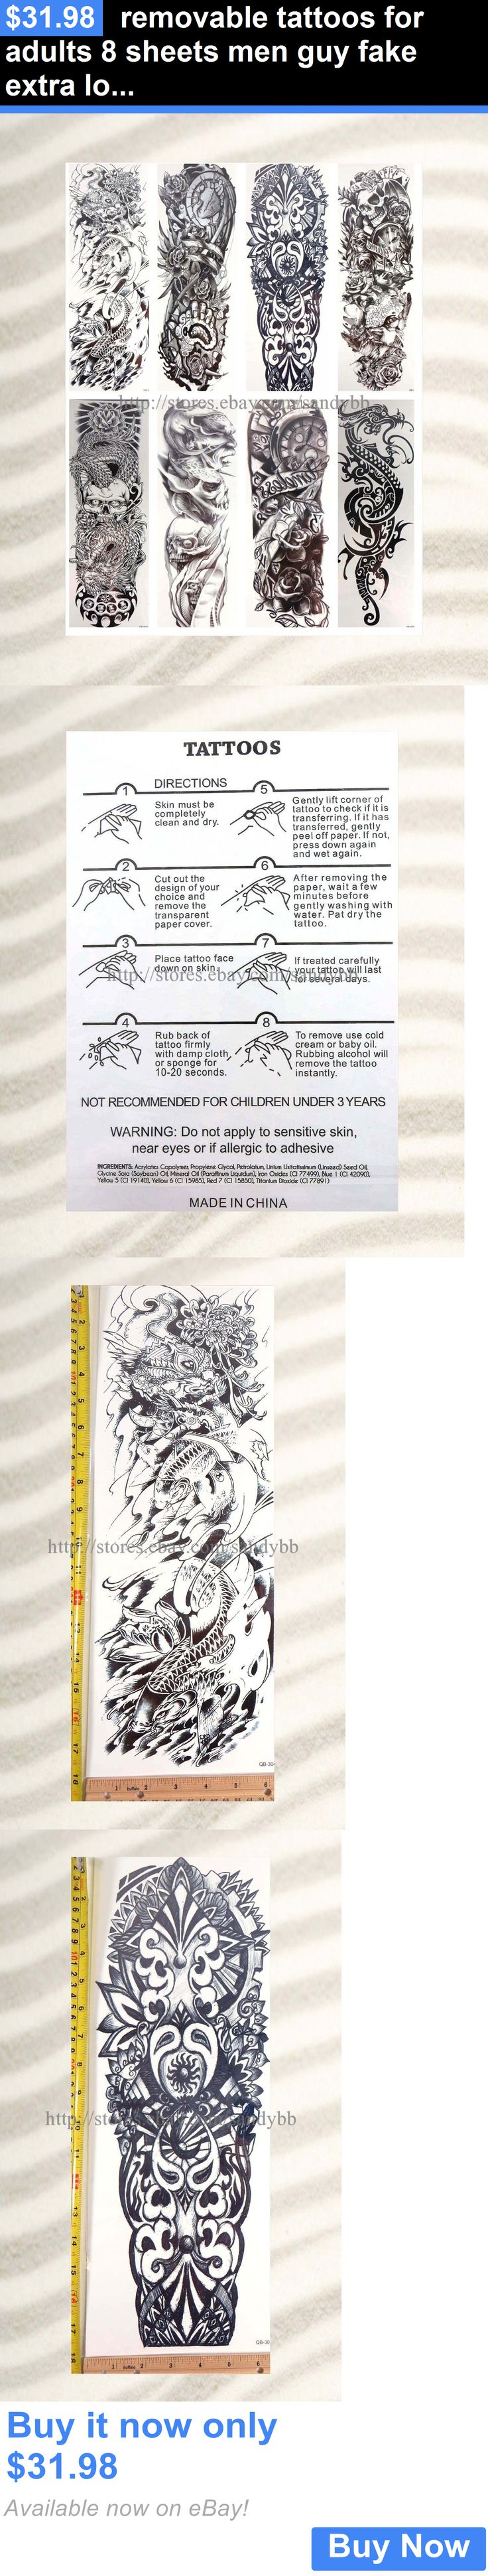 Temporary Tattoos: Removable Tattoos For Adults 8 Sheets Men Guy Fake Extra Long 18 Full Arm BUY IT NOW ONLY: $31.98